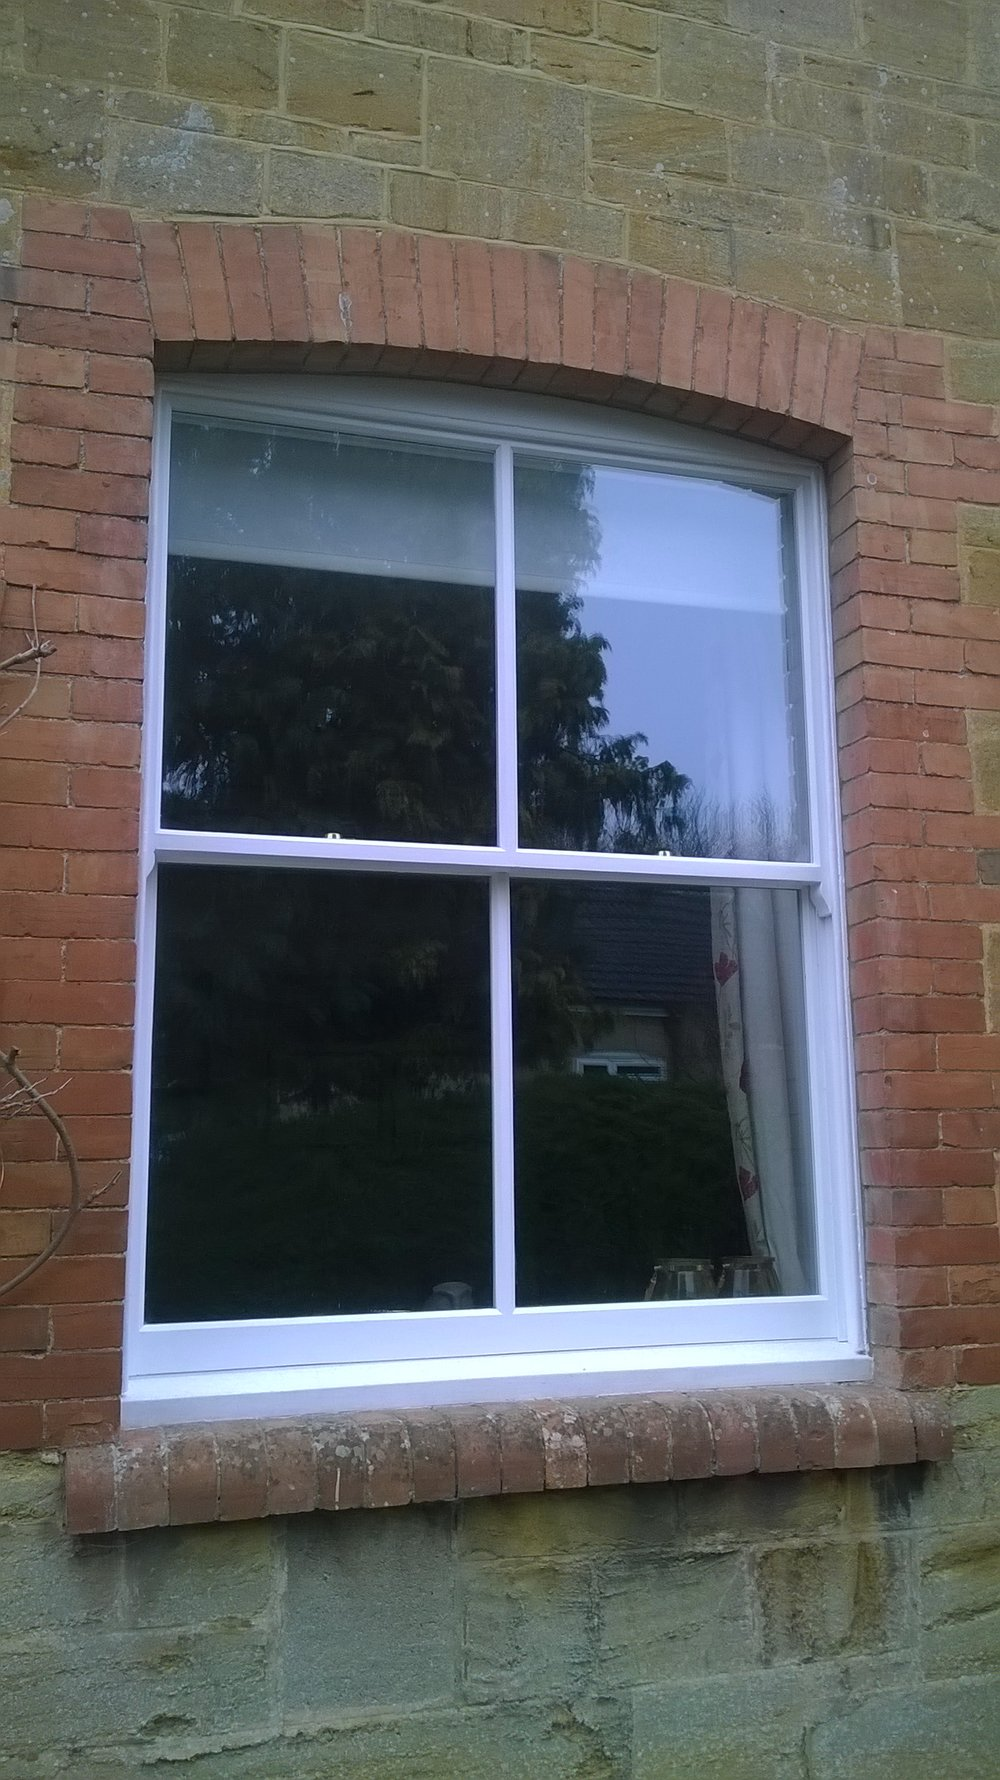 A finished window - exterior view.